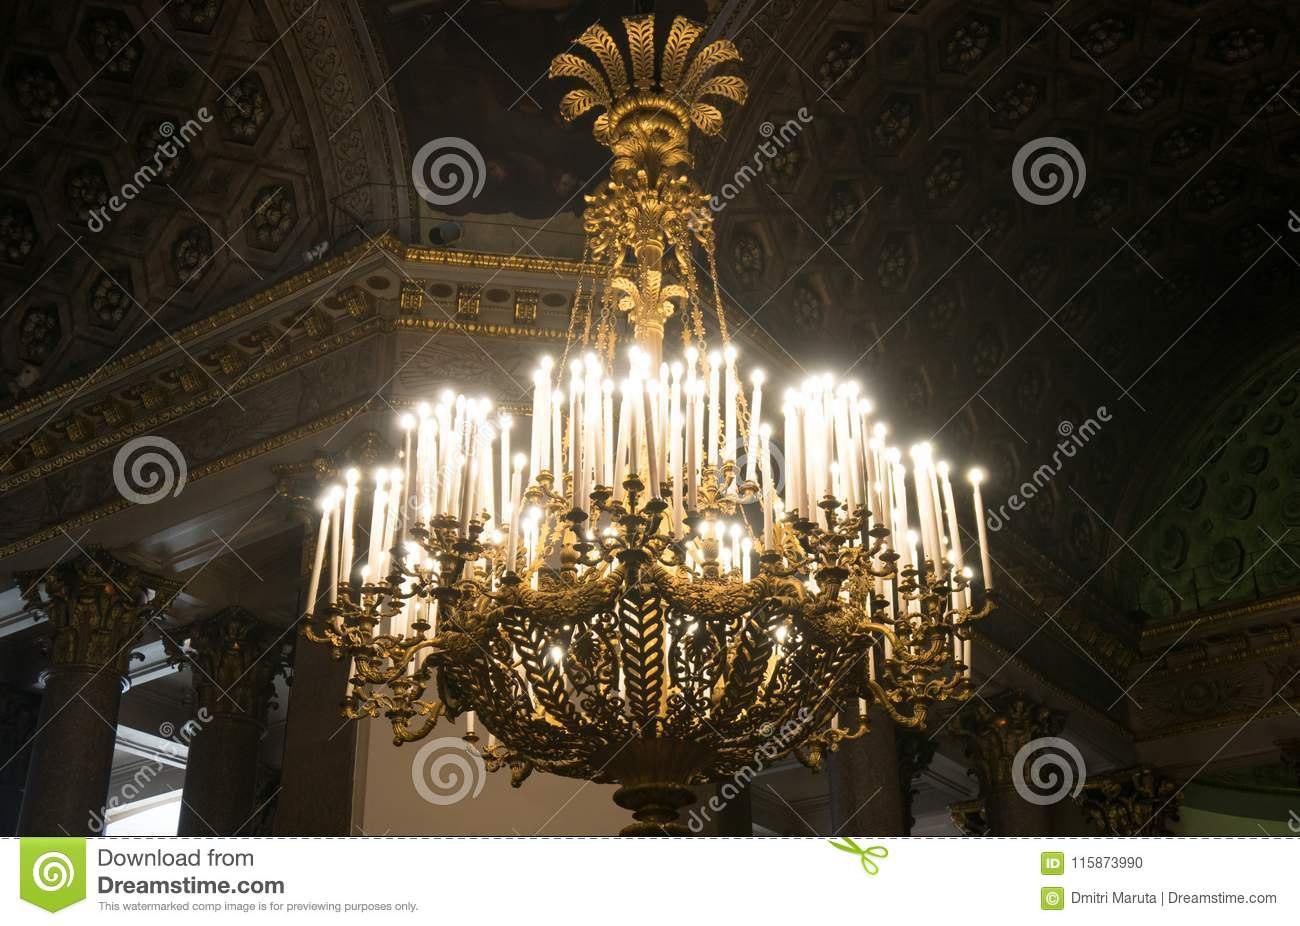 Chandelier with candles.